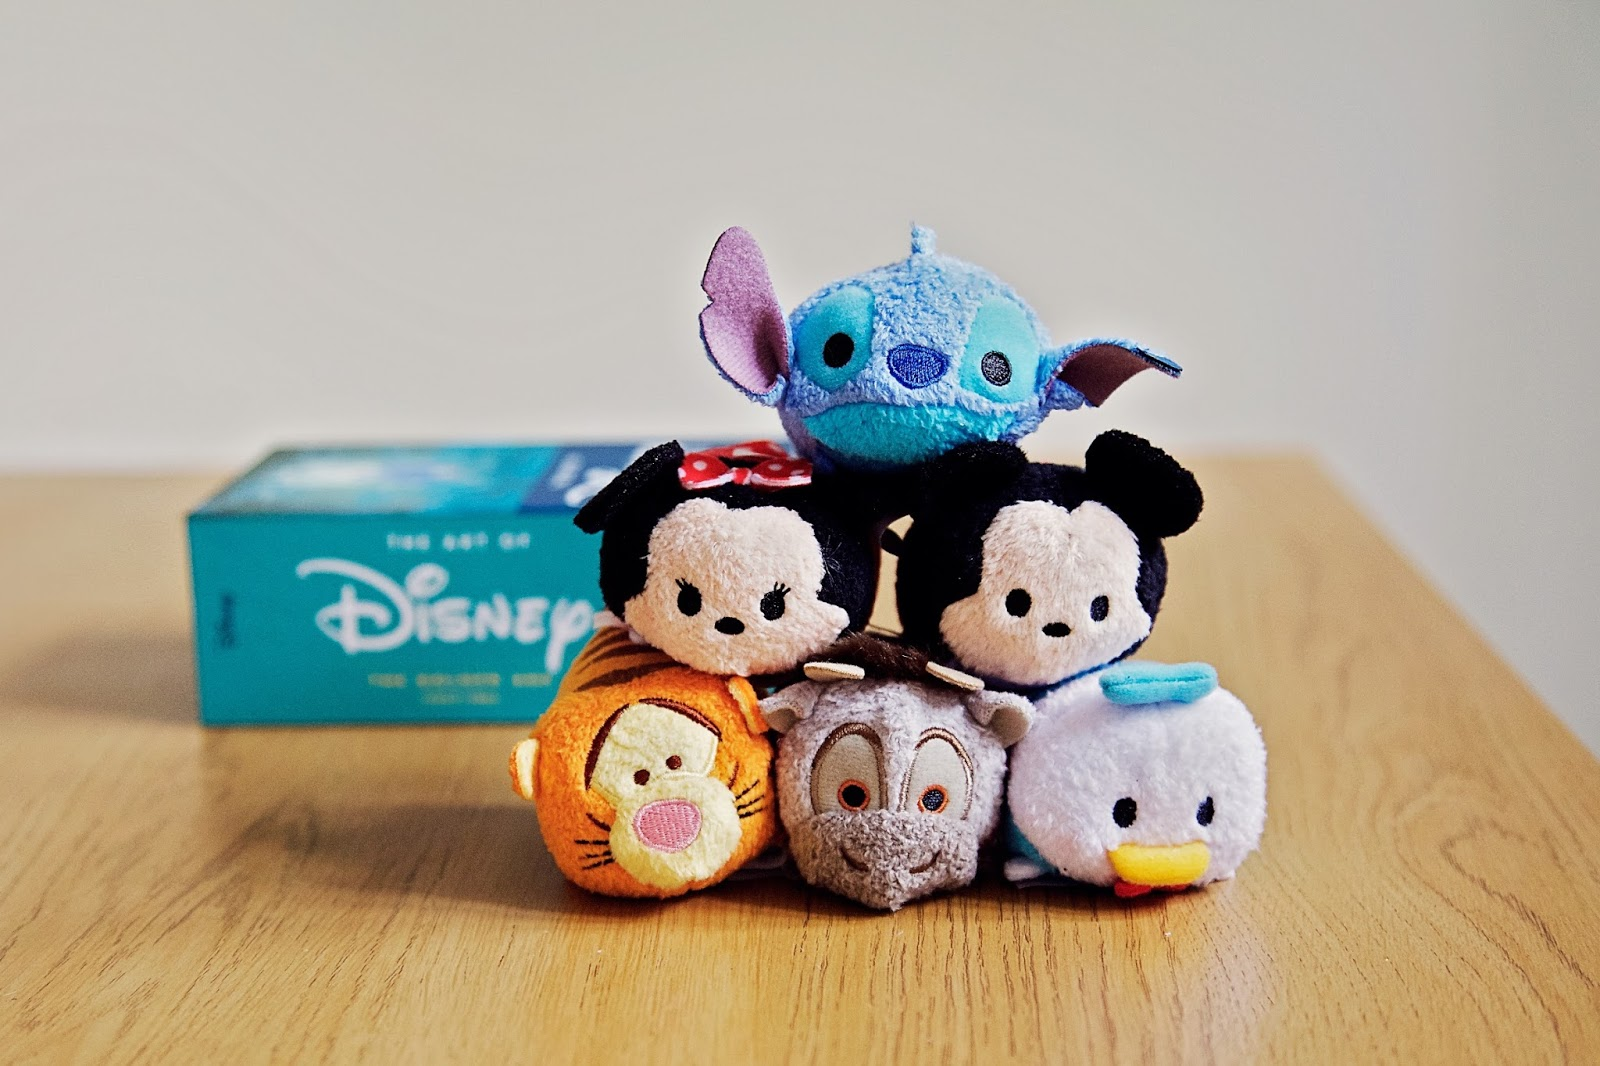 A Pyramid Stack of Disney Tsum Tsums